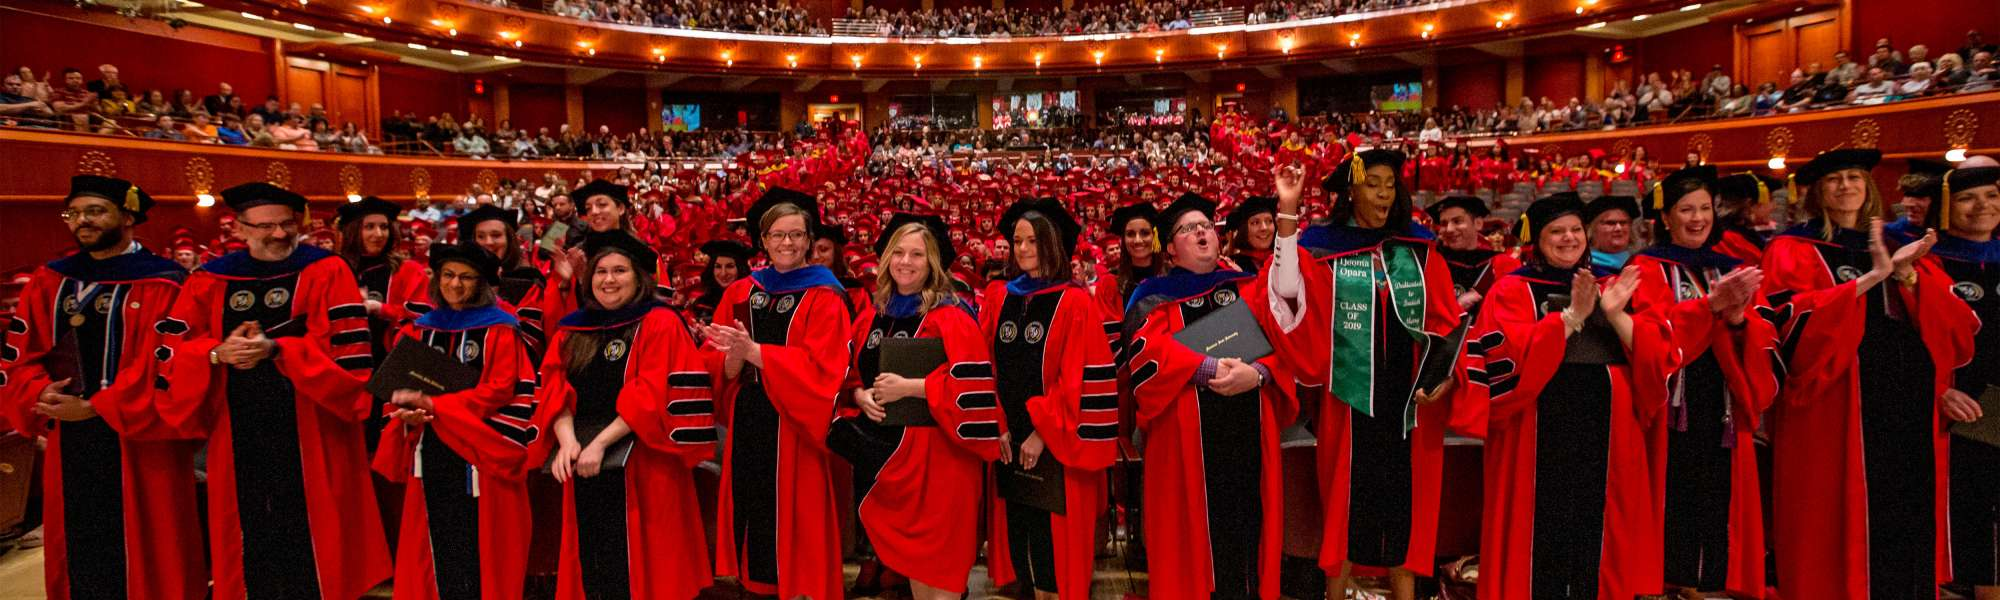 Montclair State University Graduation 2020.Montclair State Webcasts Montclair State University